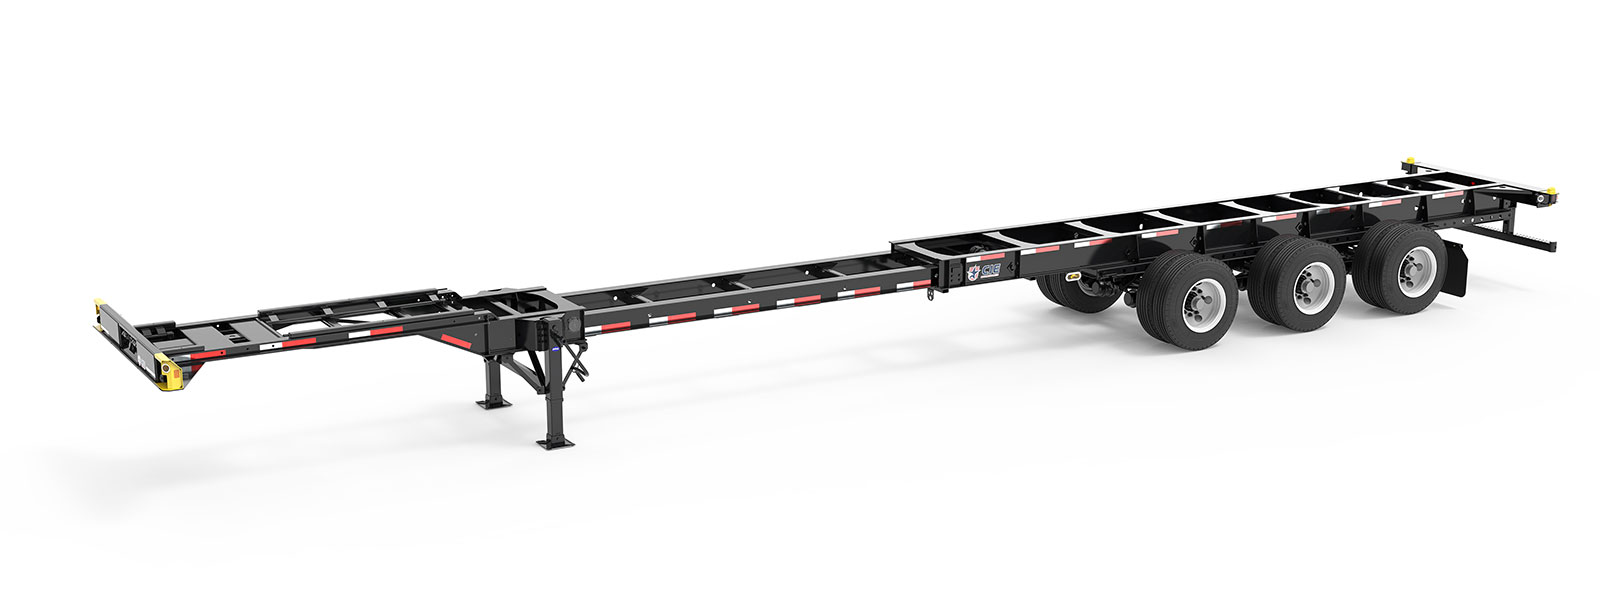 40-53' Extendable Tridem Container Chassis Angle View Final